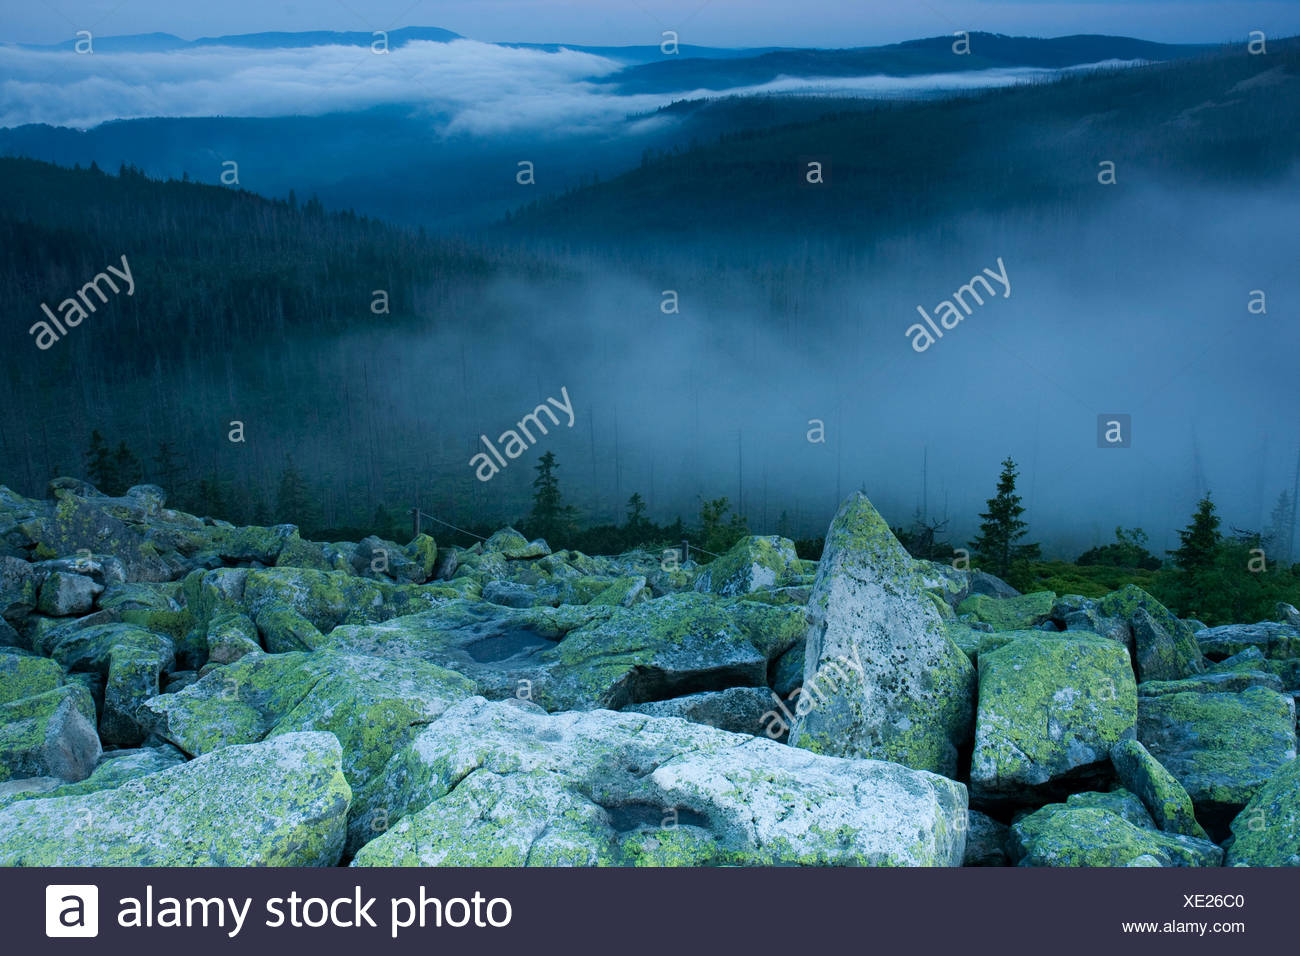 Cloudy atmosphere on Mt Lusengipfel, Bavarian Forest National Park, Bavaria, Germany, Europe Stock Photo